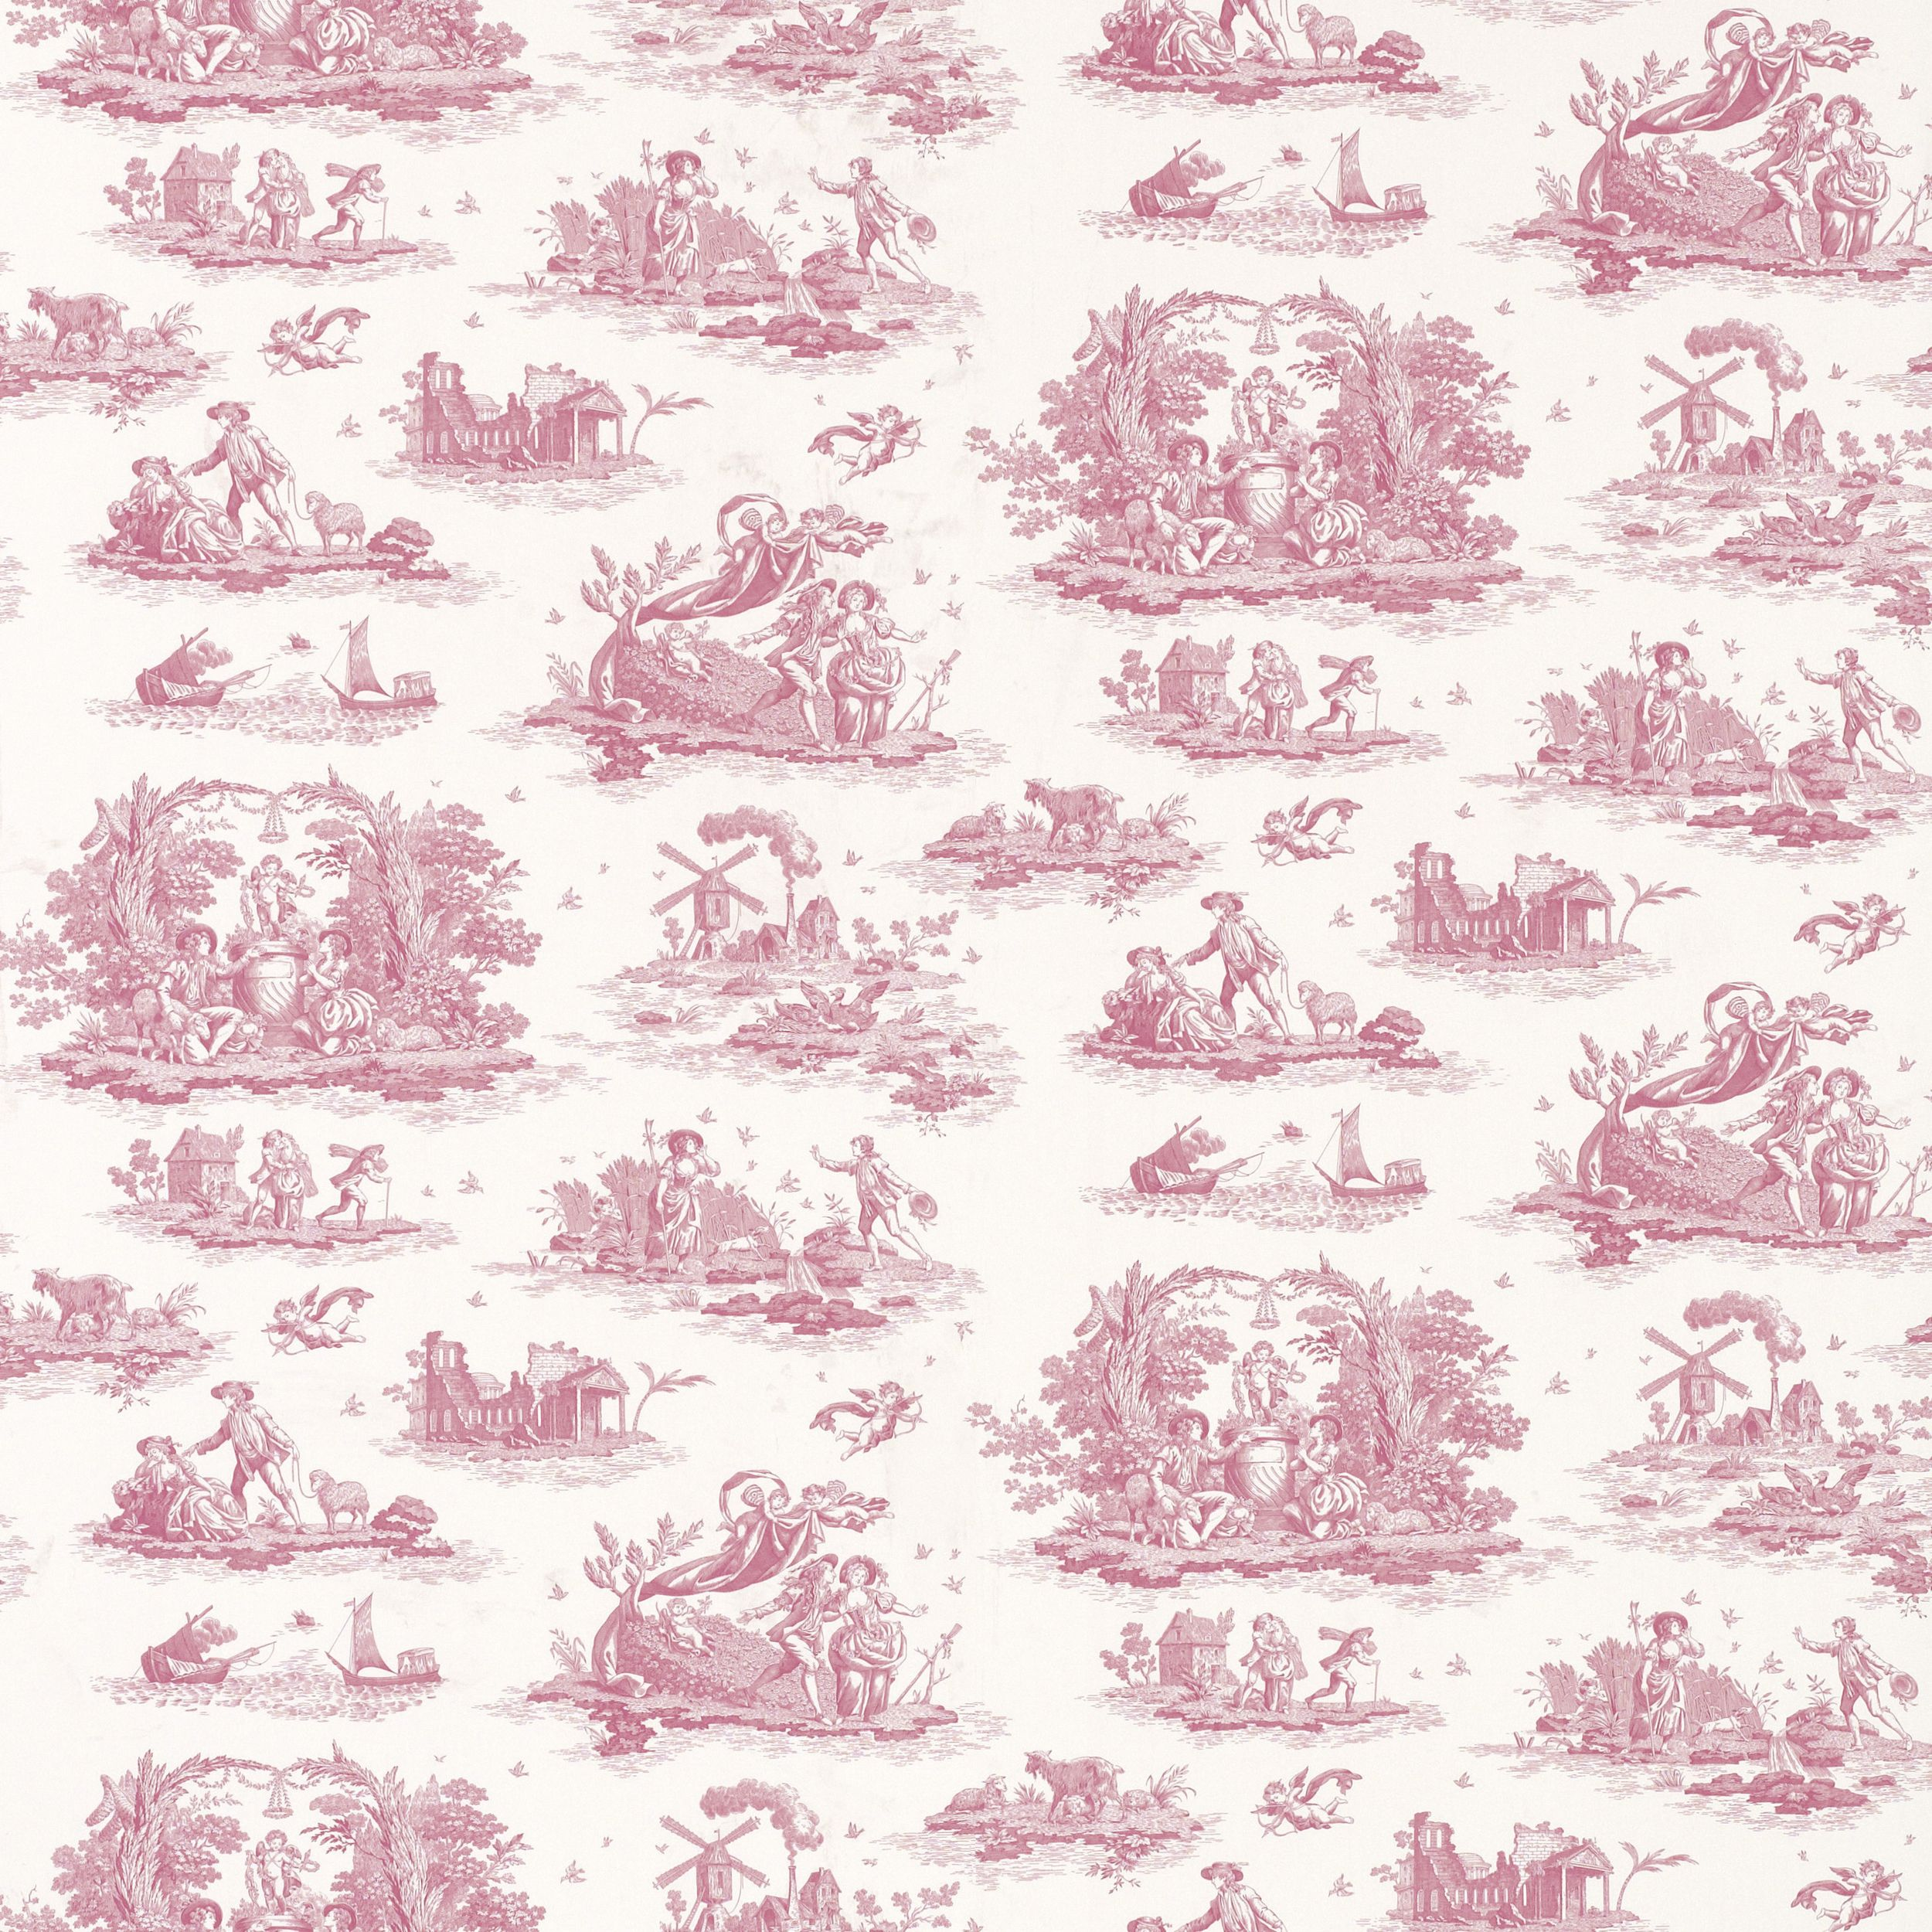 Laura Ashley Wallpaper I Ve Bought For My Bathroom At Last Toile Wallpaper Beautiful Bedroom Inspiration Victorian Paintings,Corner Kitchen Cabinet Storage